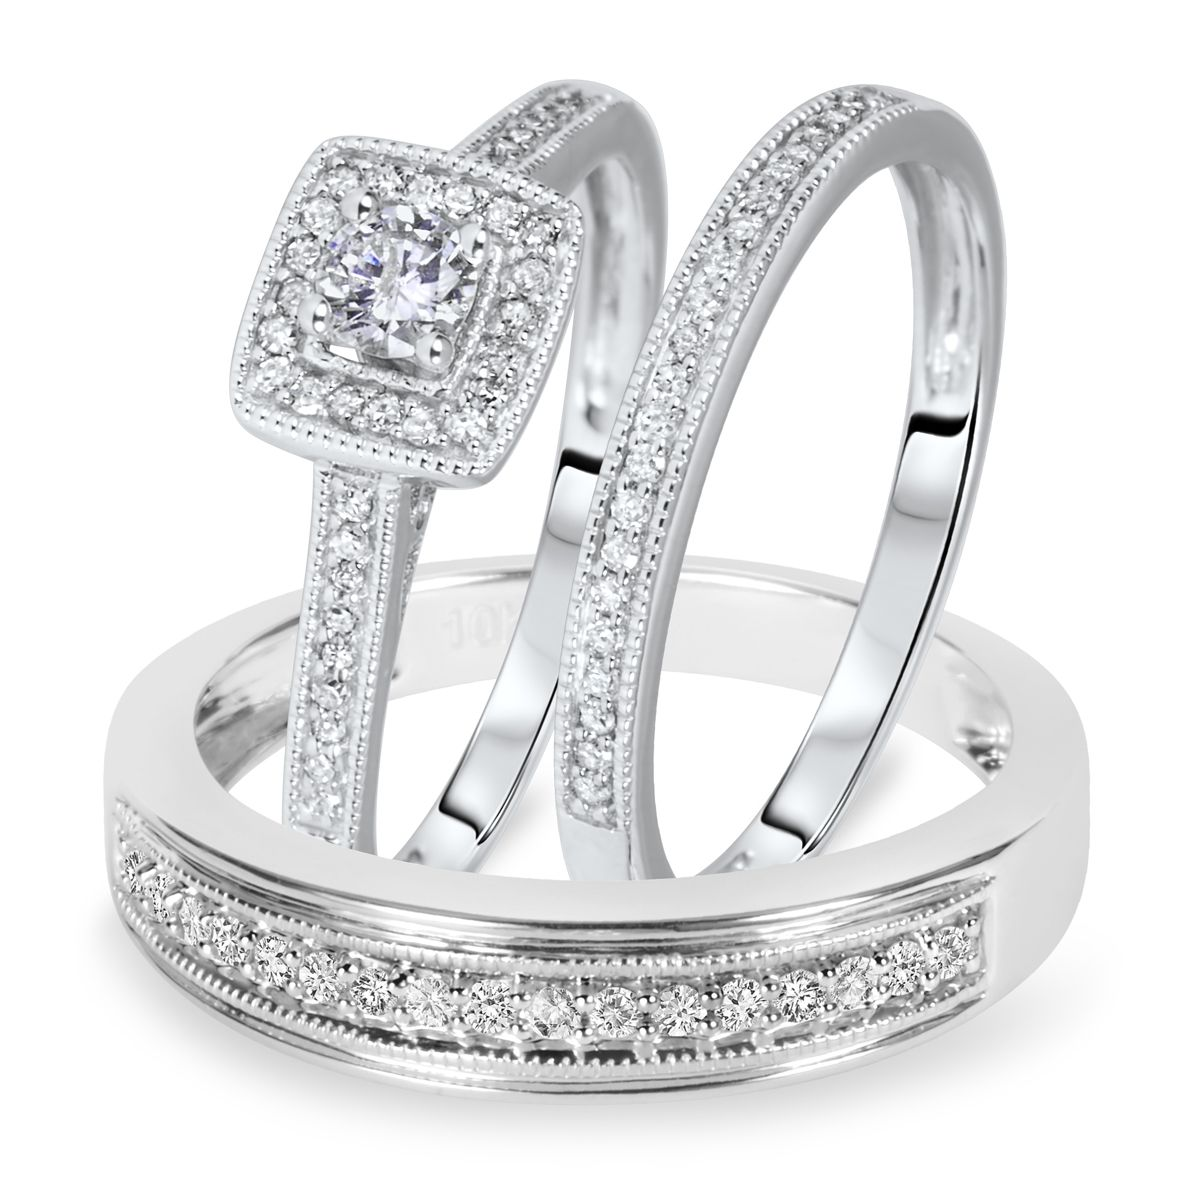 1 2 Carat T W Round Cut Diamond Matching Trio Wedding Ring Set 10k White Gold